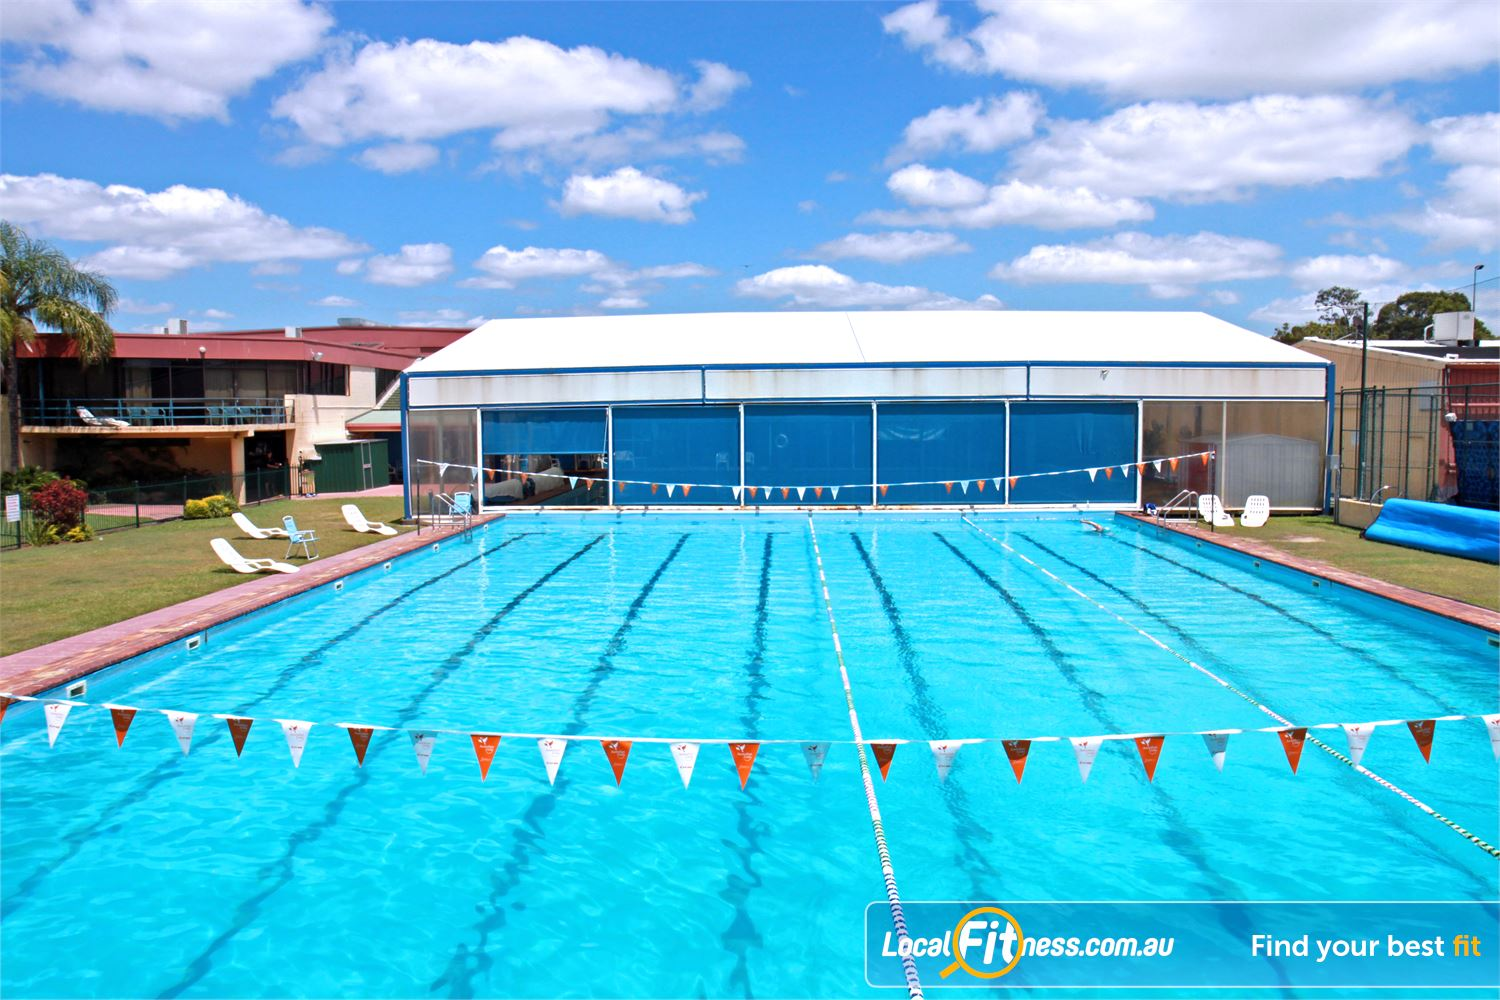 Goodlife Health Clubs Alexandra Hills The outdoor Olympic size Alex Hill Swimming Pool.